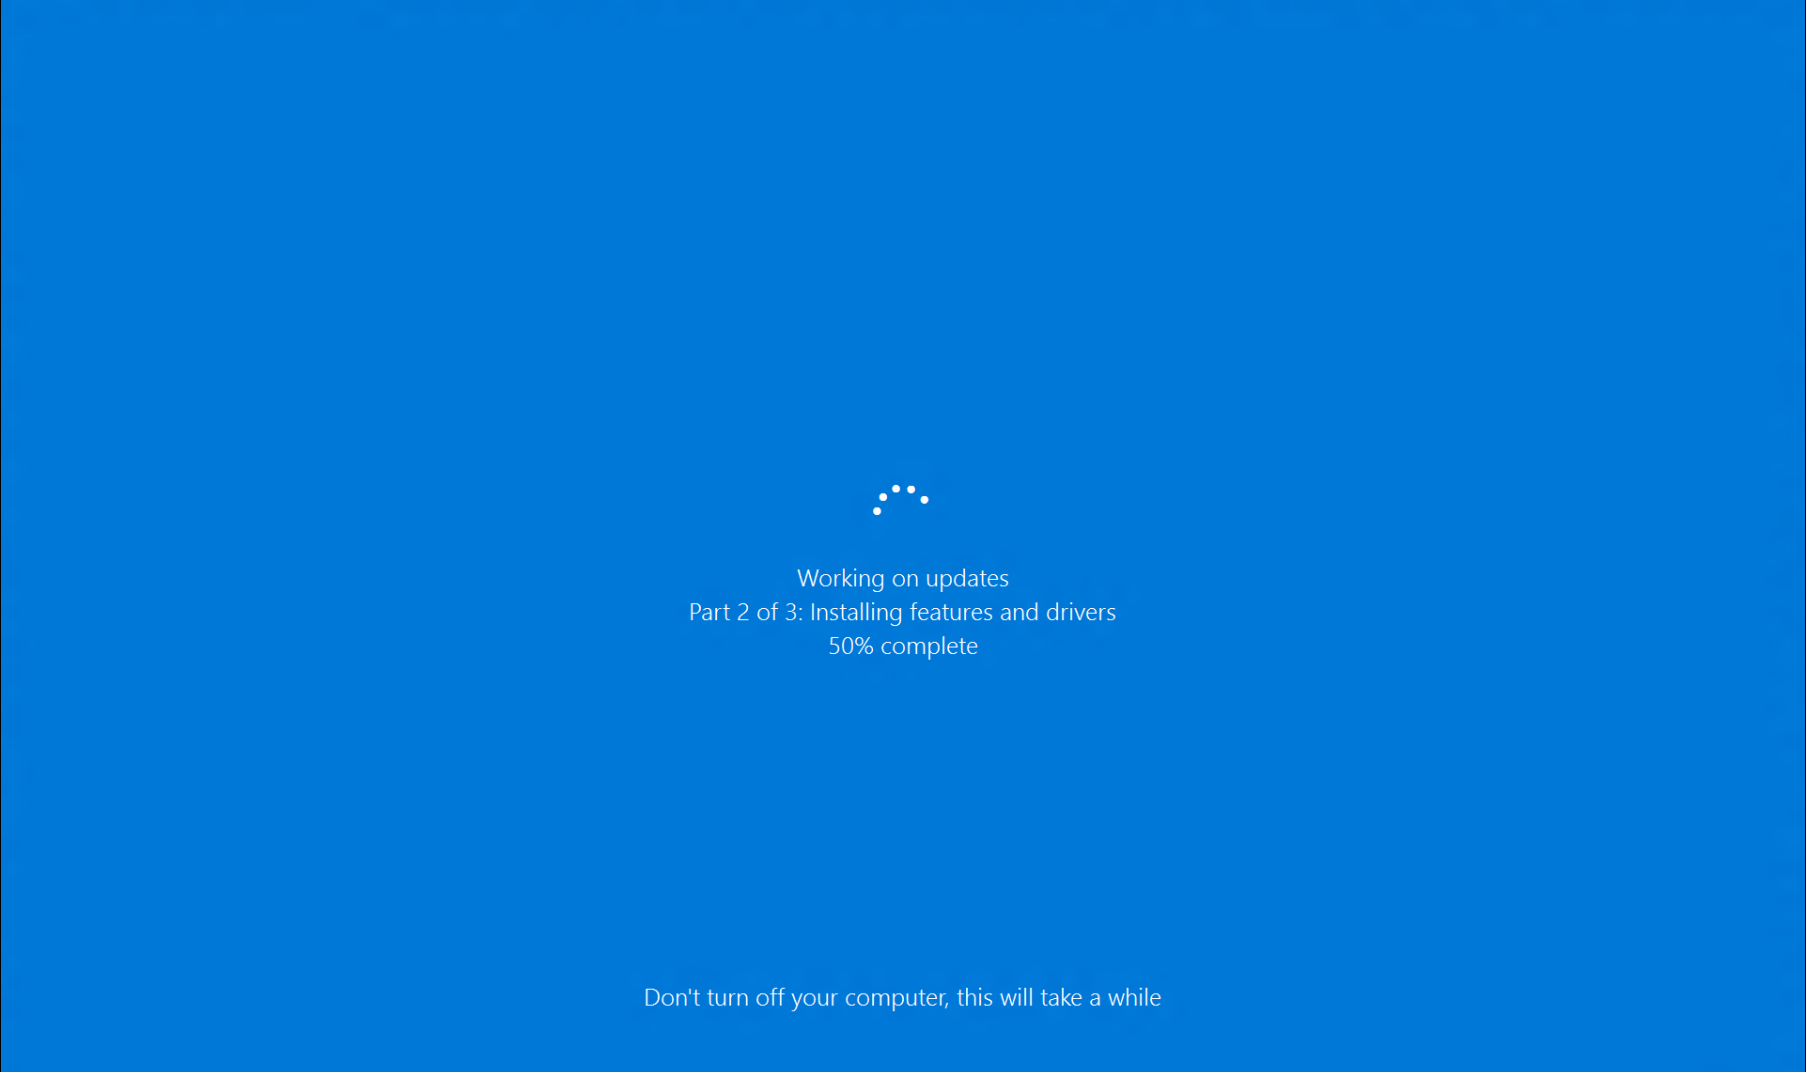 Having trouble with Windows Update? Try this new tool from Microsoft